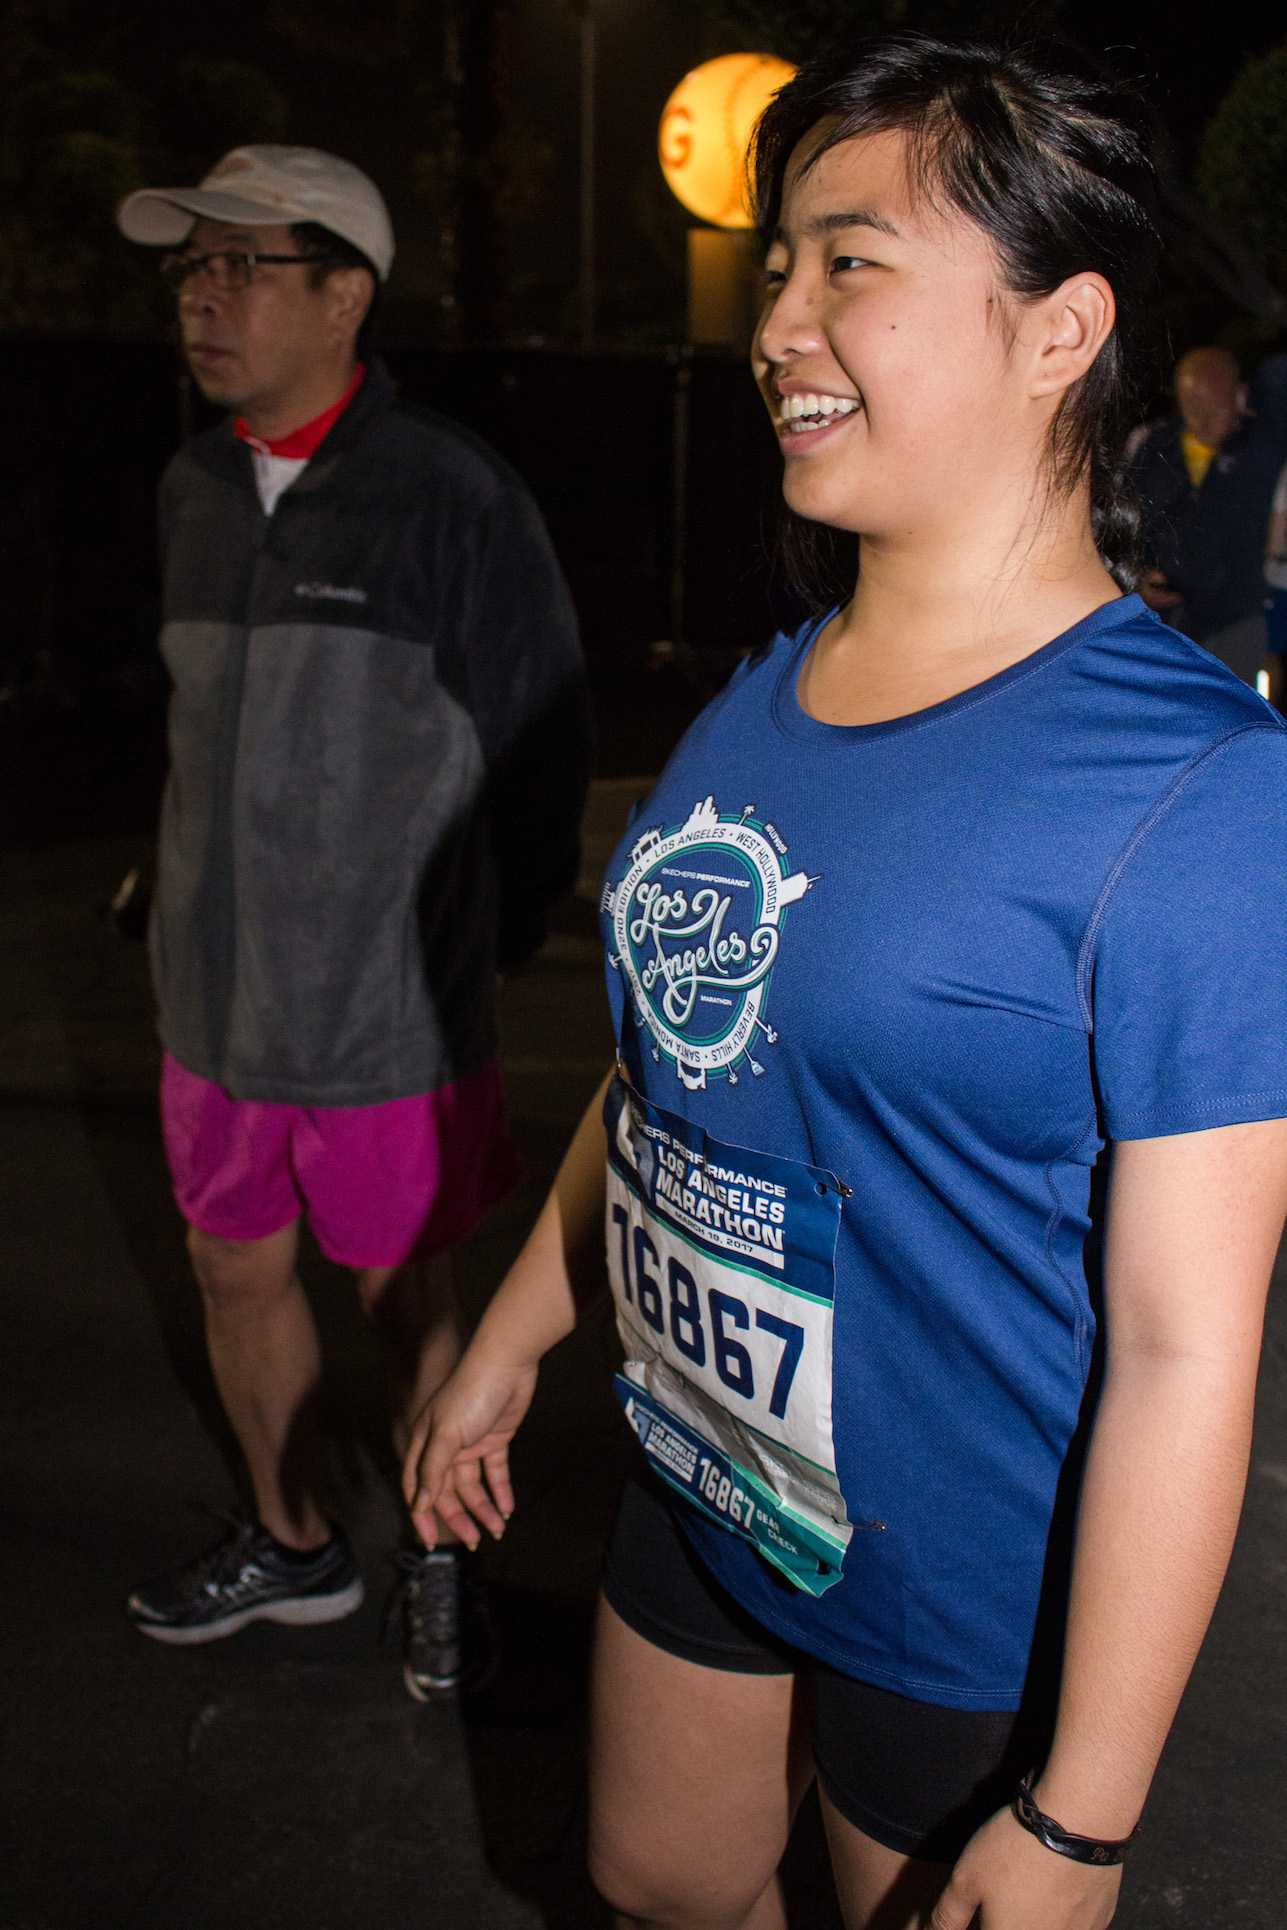 Santa Monica College Acssociated Students Activities Director, Kathy Pho (right) and her father Que Pho (left) converses with thei family as she prepares for the 2017 Skechers Performance LA Marathon on Sunday March 19, 2017 at the Dodger Stadium in Los Angeles, CA. Photo by Marisa Vasquez.